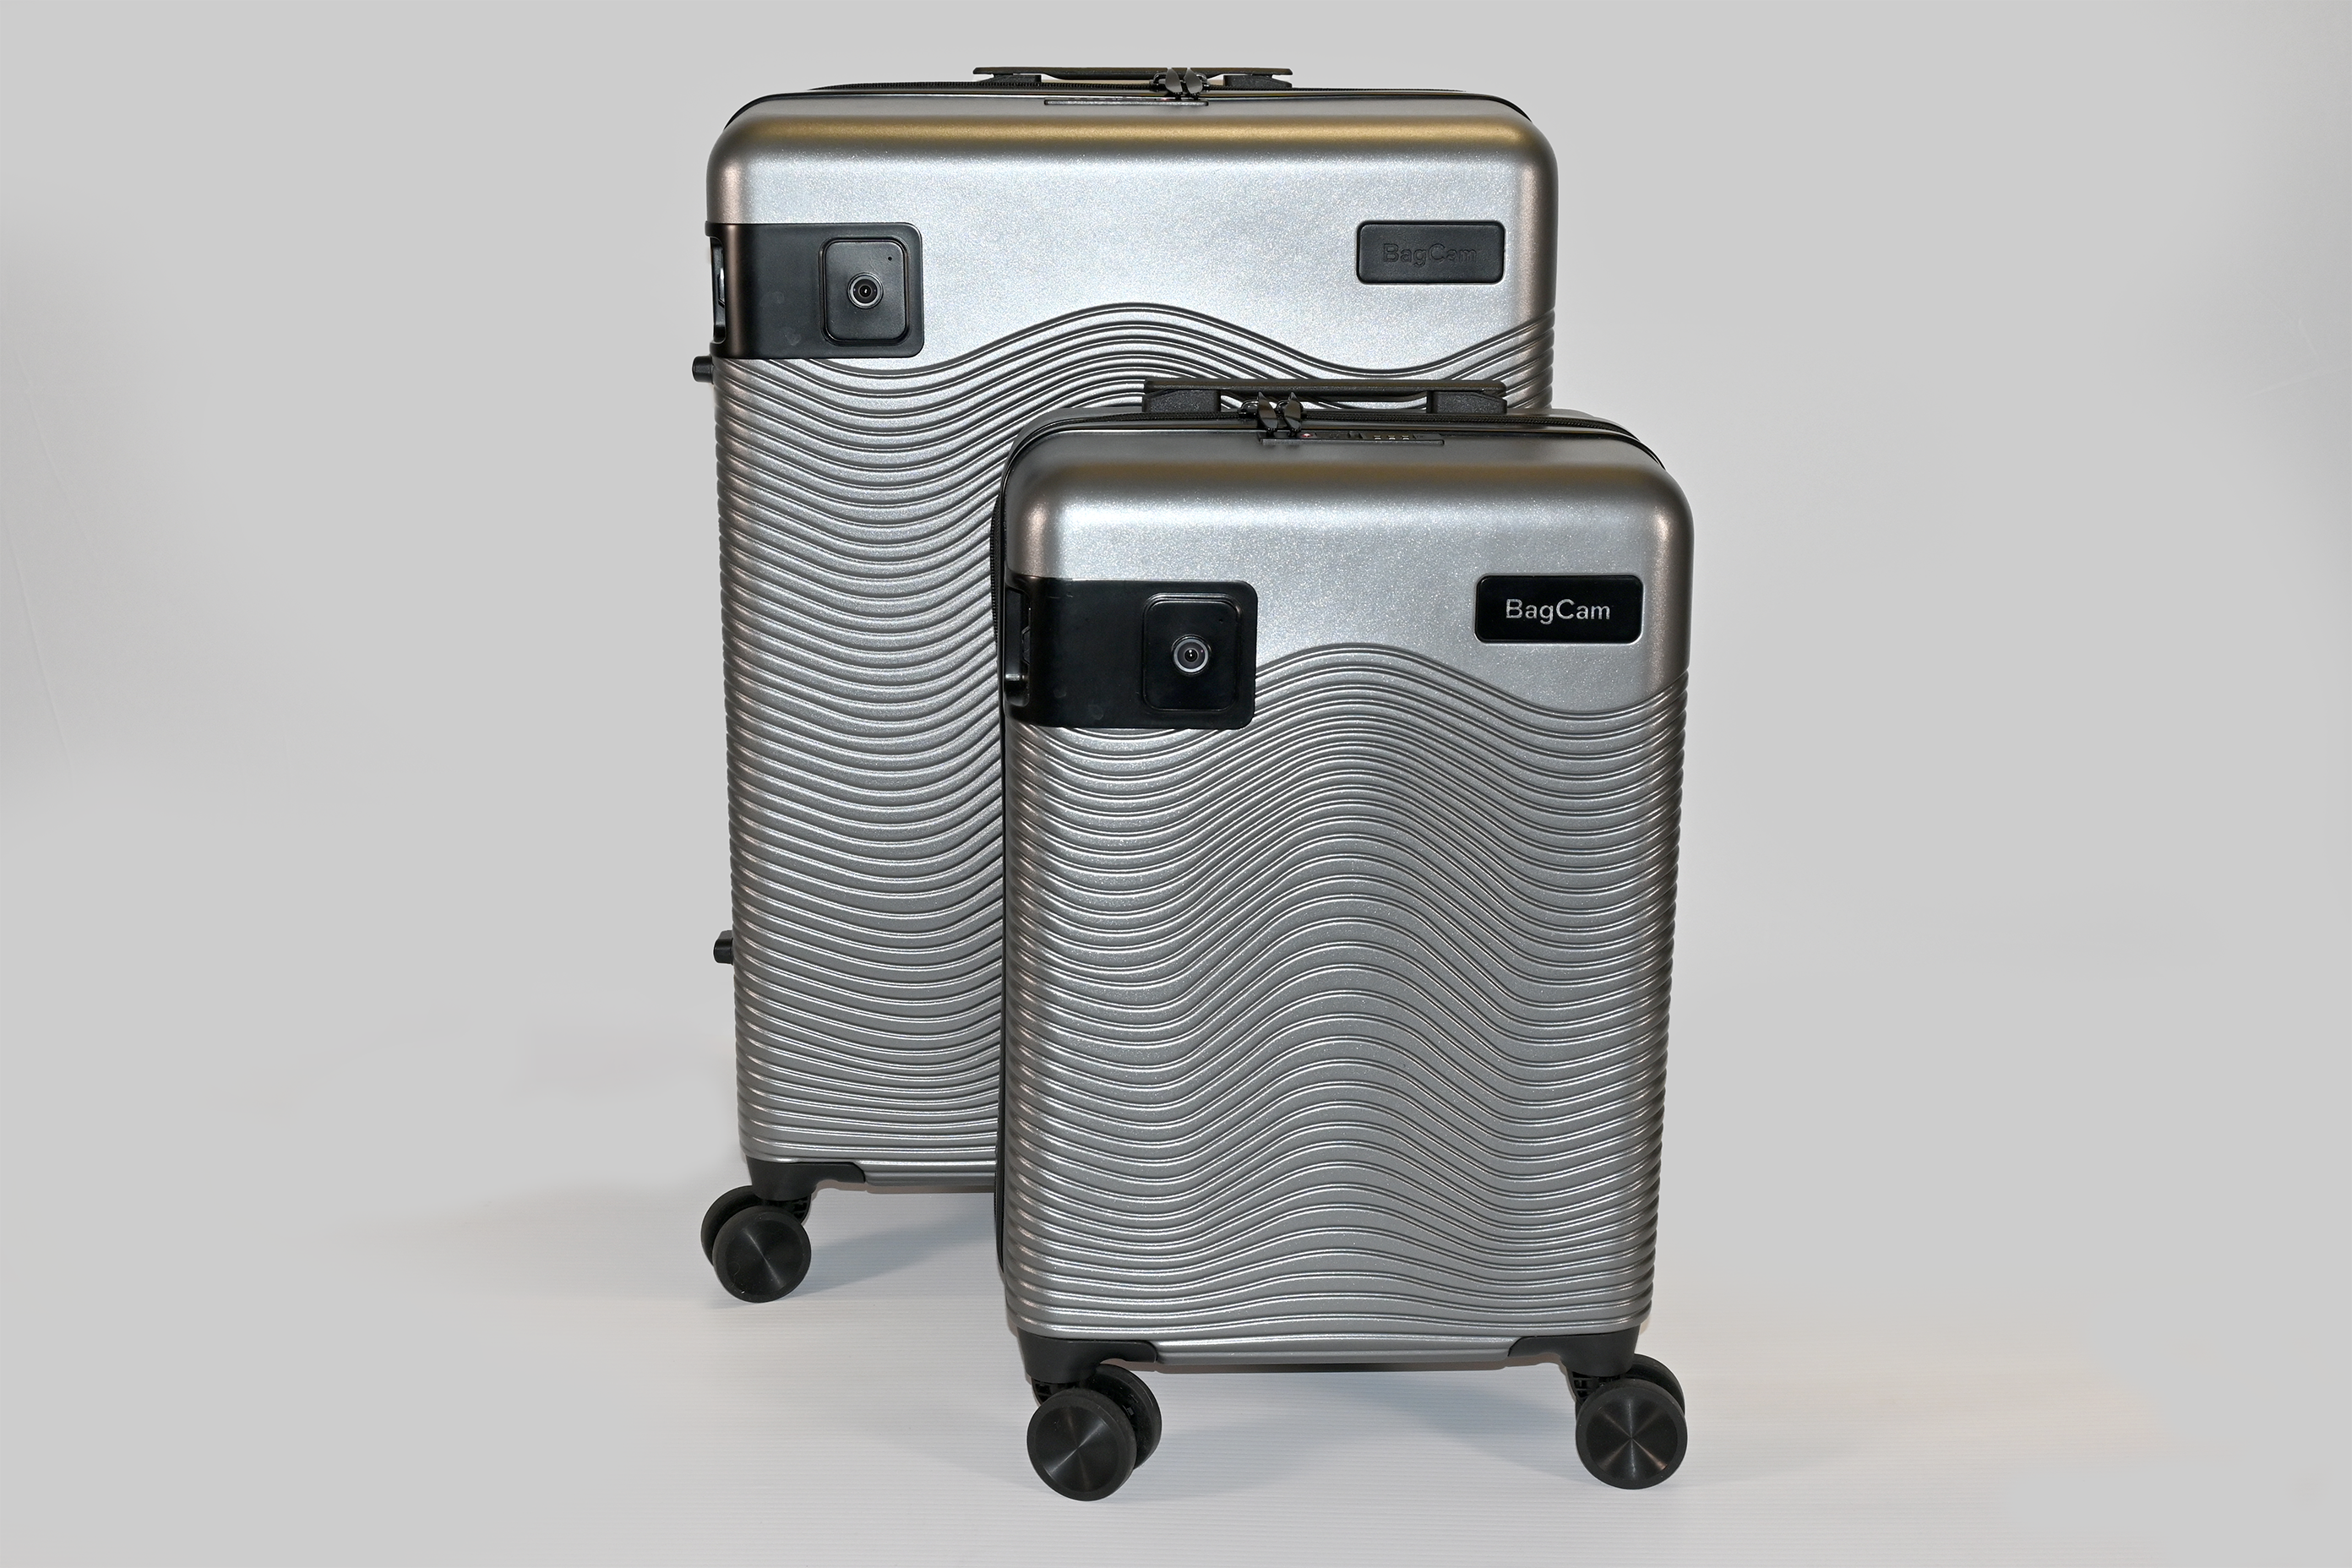 Everyday, There Are 3,000 Pieces of Luggage Stolen at Airports. Deter Baggage Theft with BagCam.